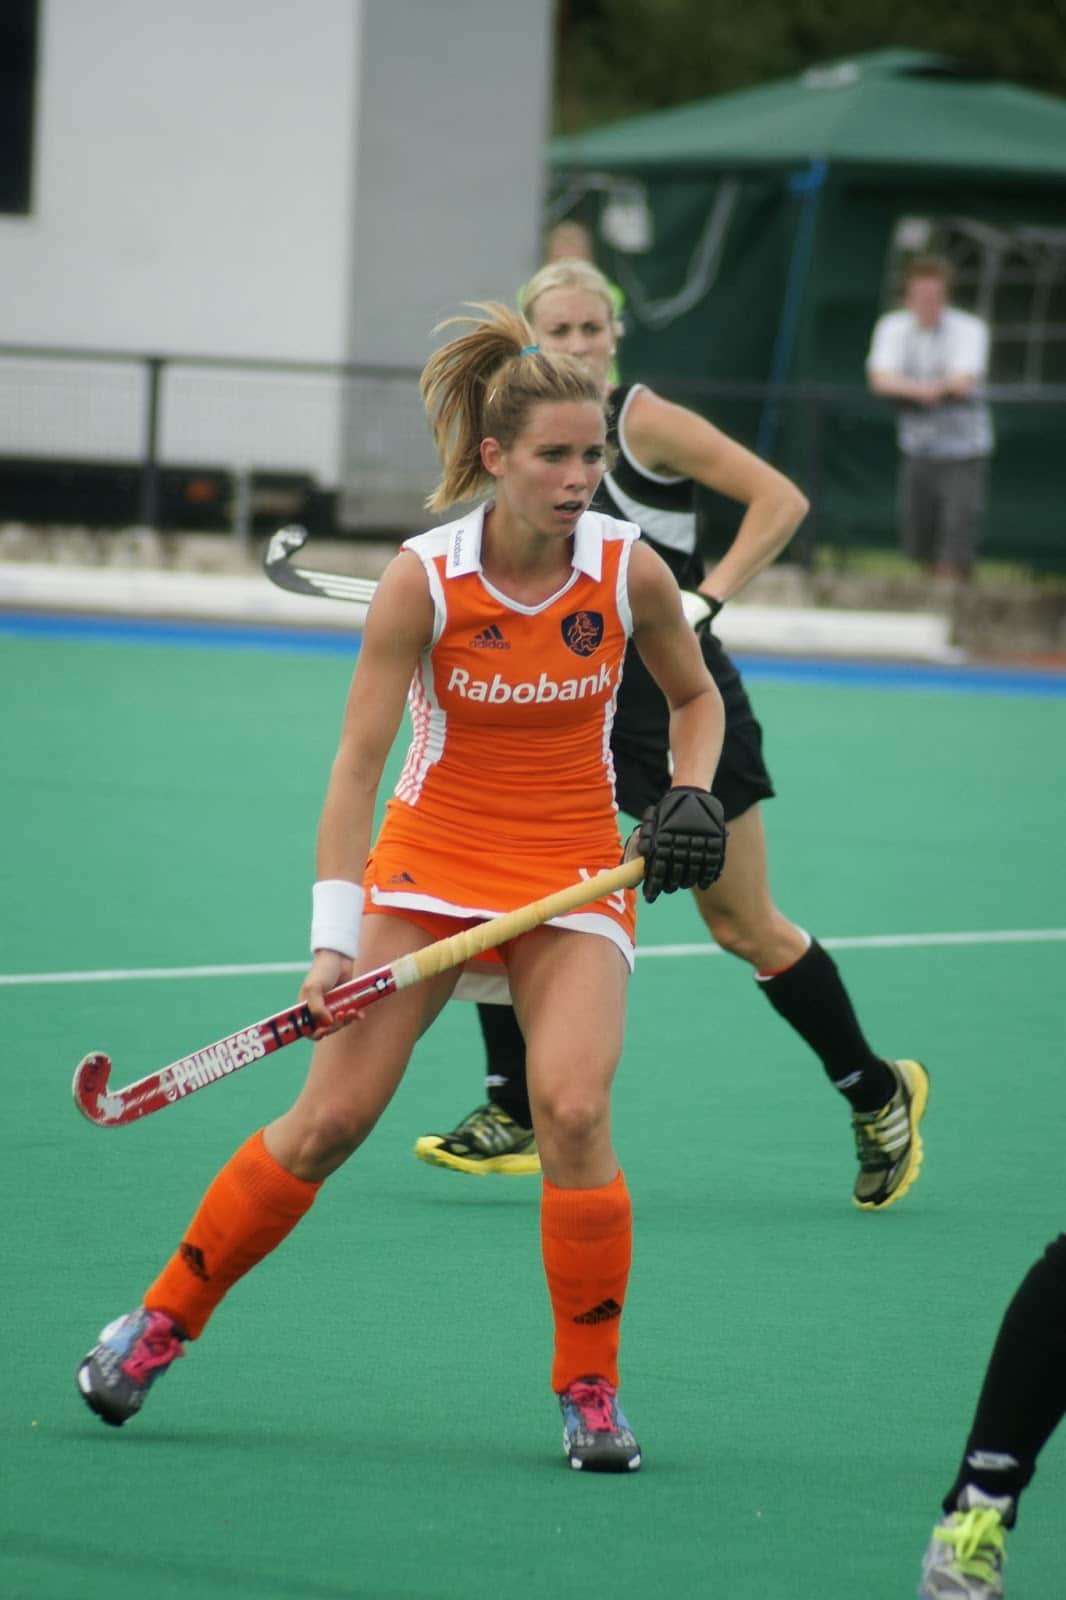 Ellen Hoog - 38 Hottest Pics Of The Dutch Field Hockey ...